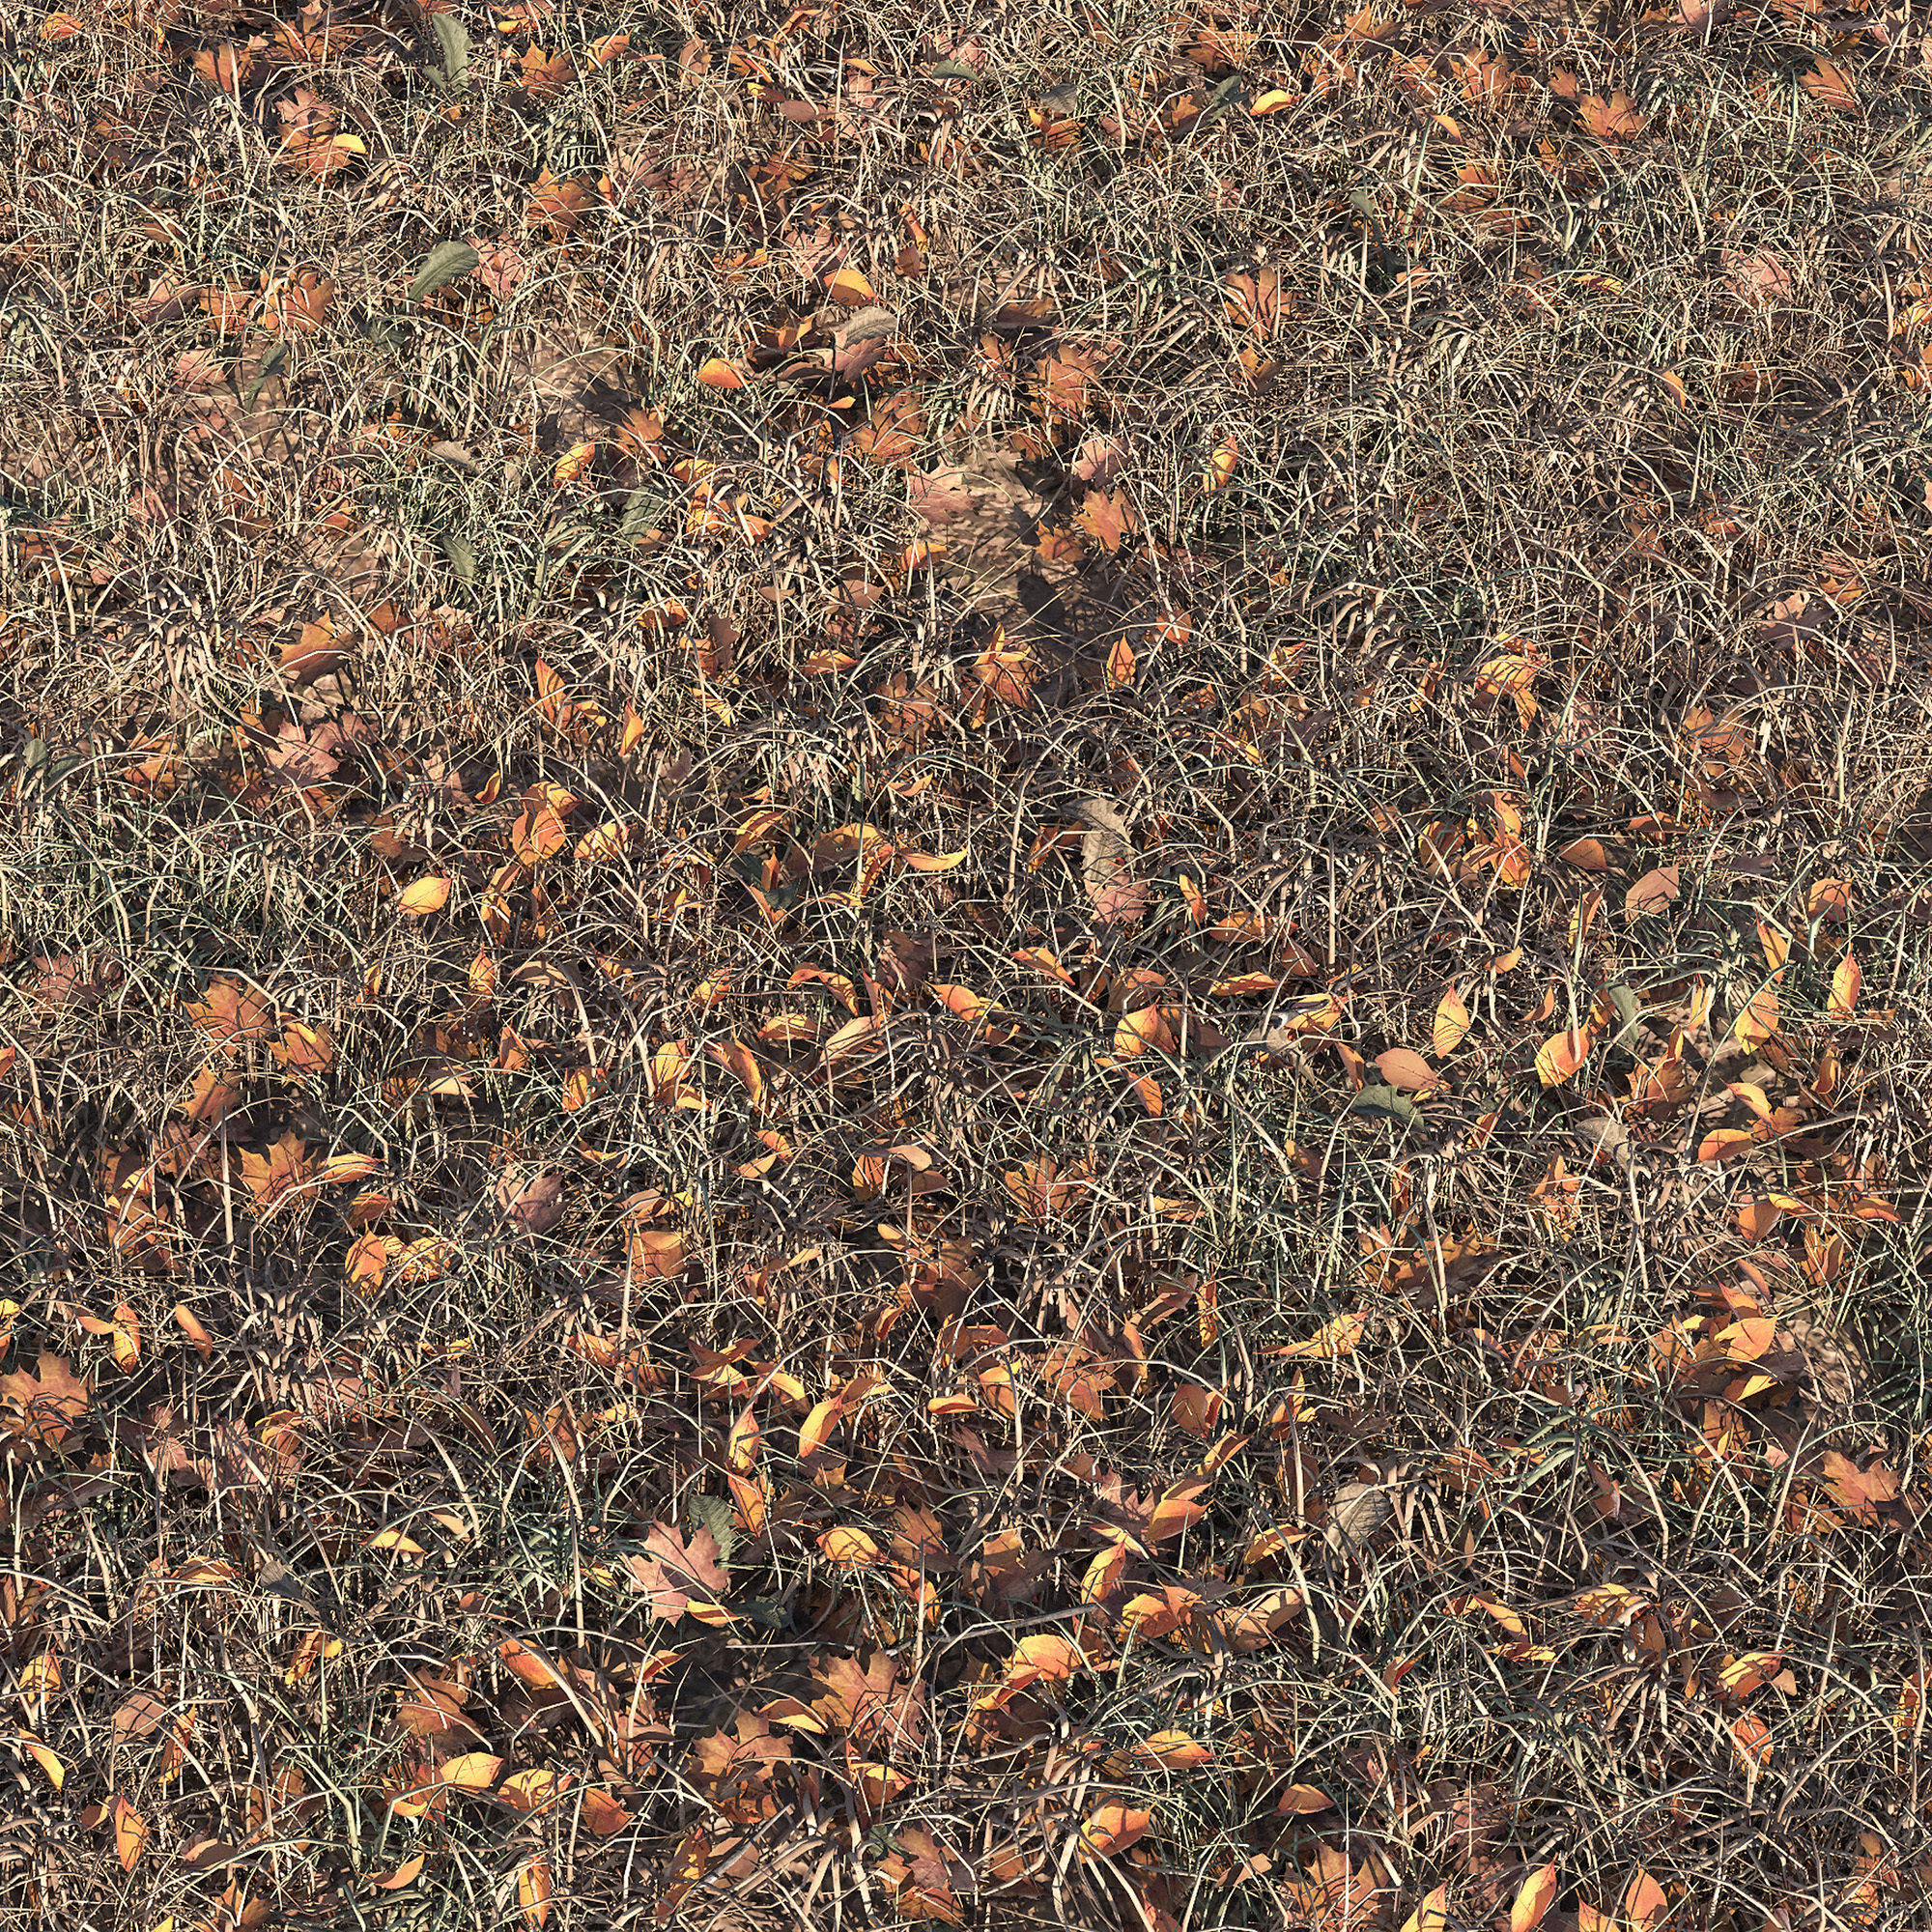 Autumn grass with leaves